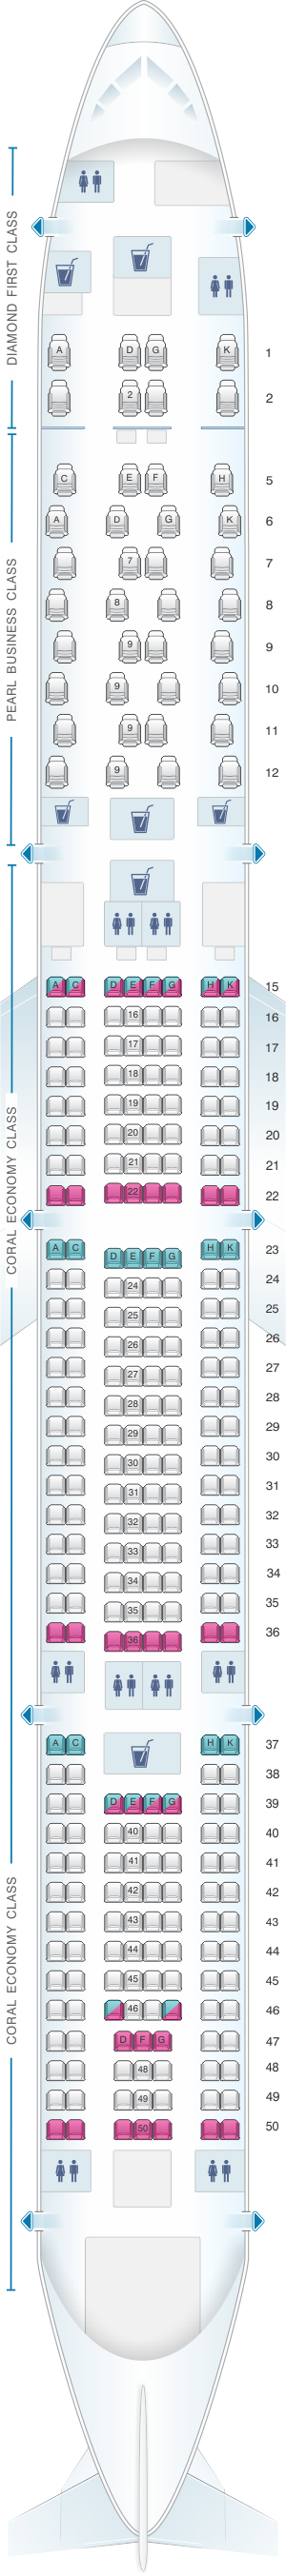 Seat map for Etihad Airways Airbus A340 600